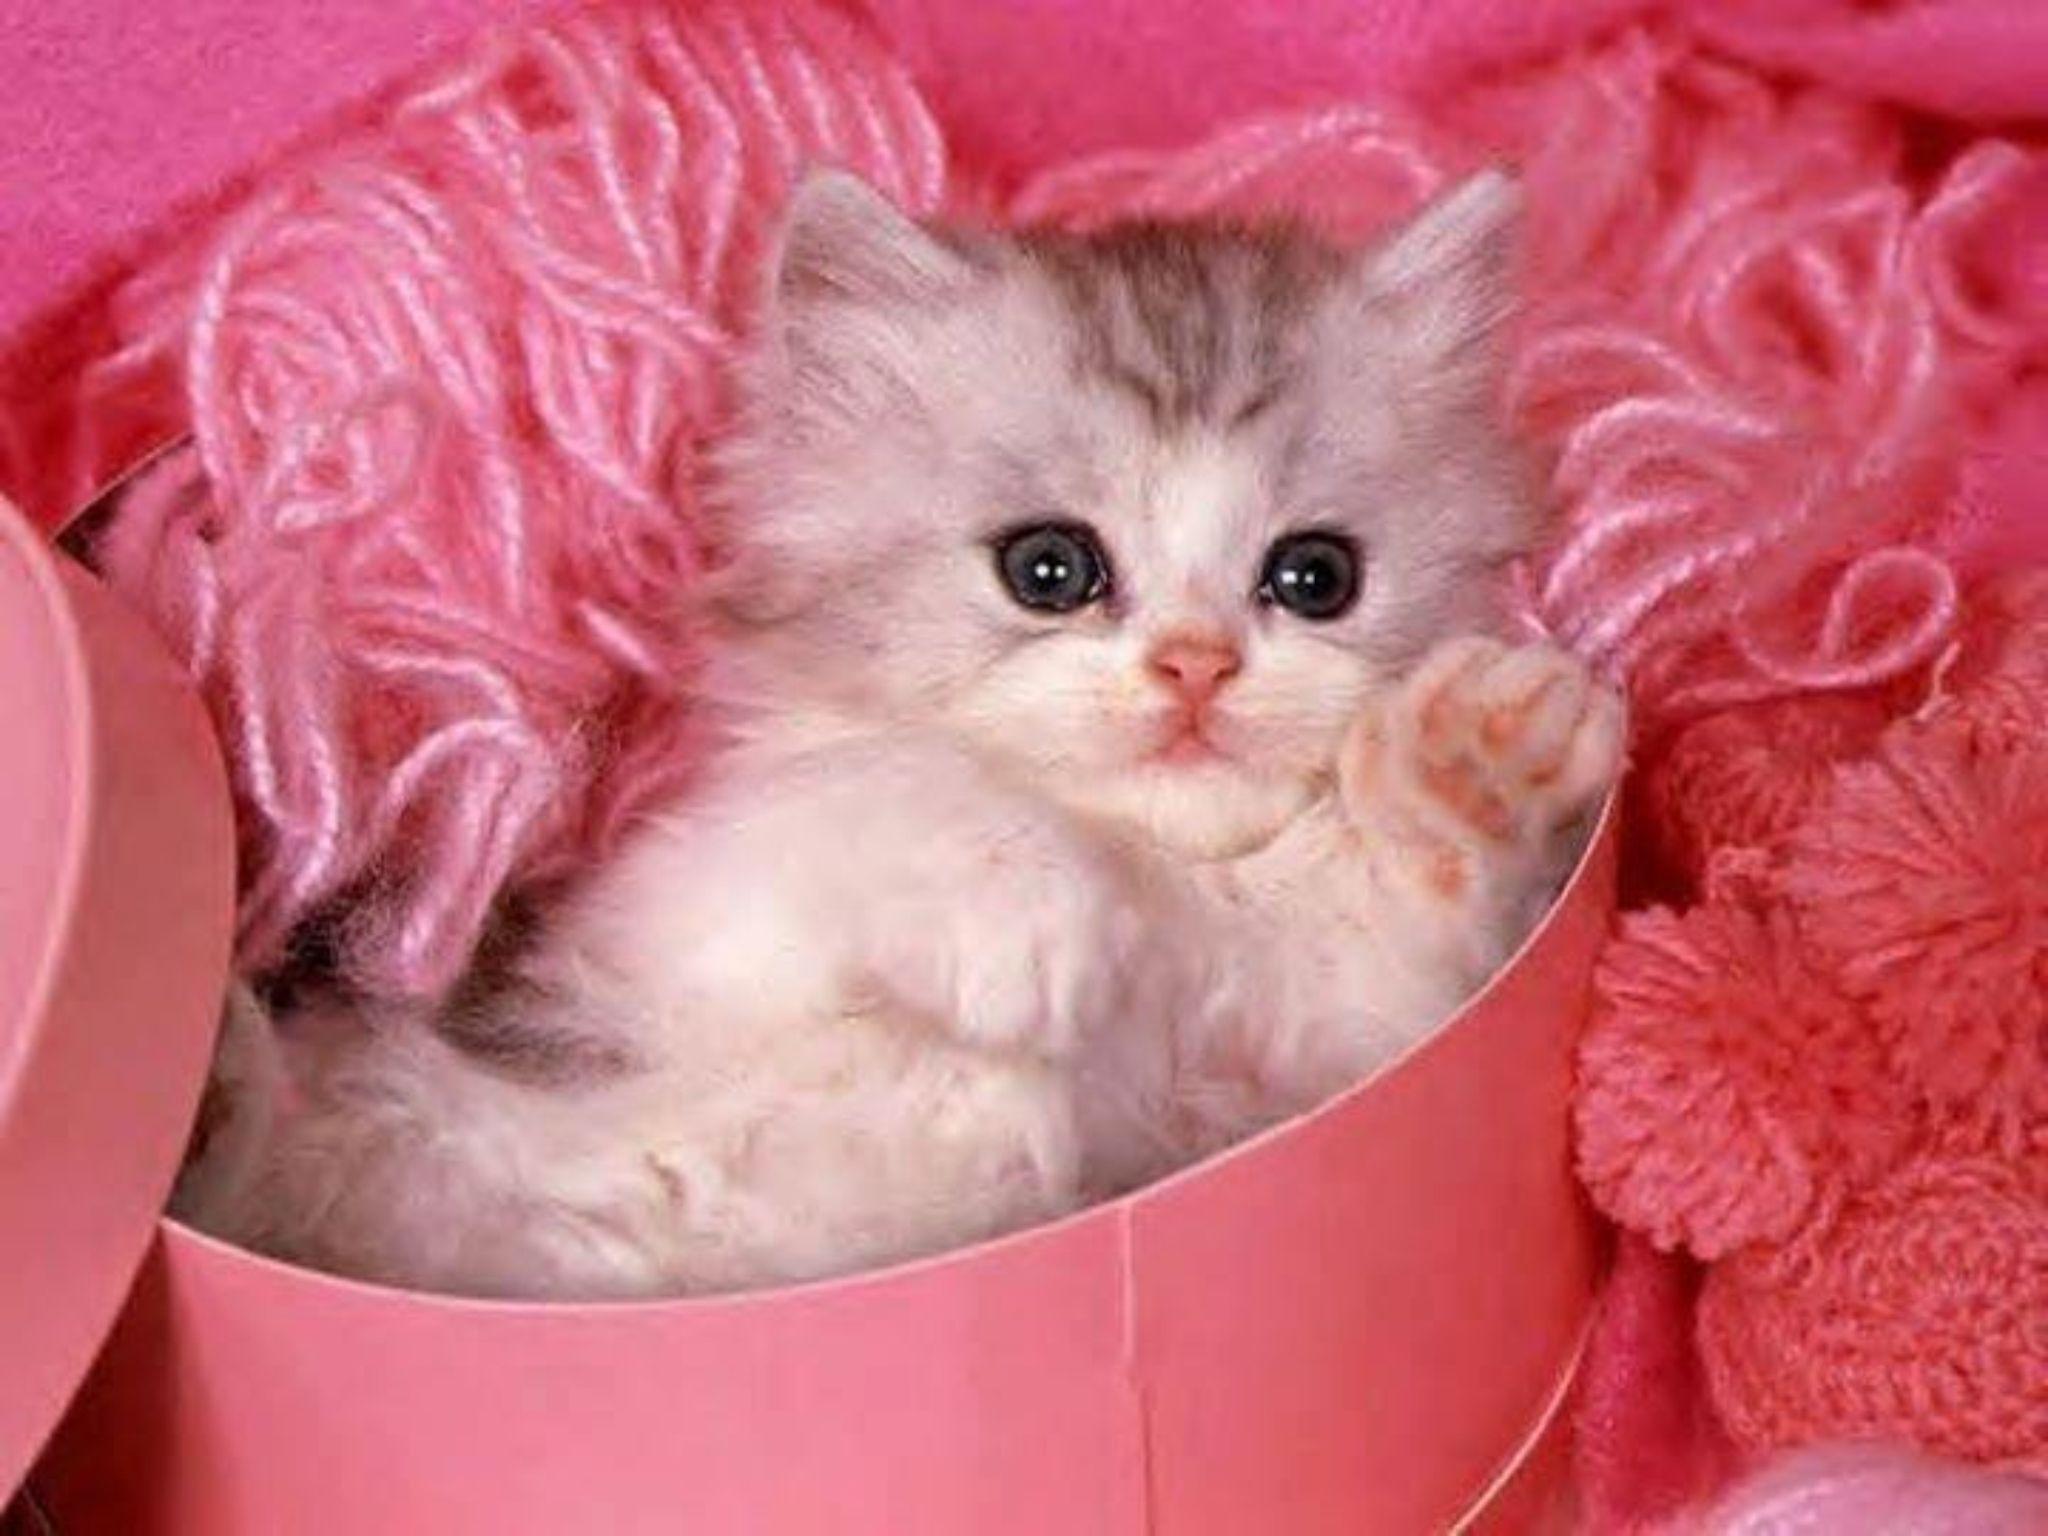 So Sweet Cute Cat Wallpaper Cute Cats And Dogs Kittens Cutest